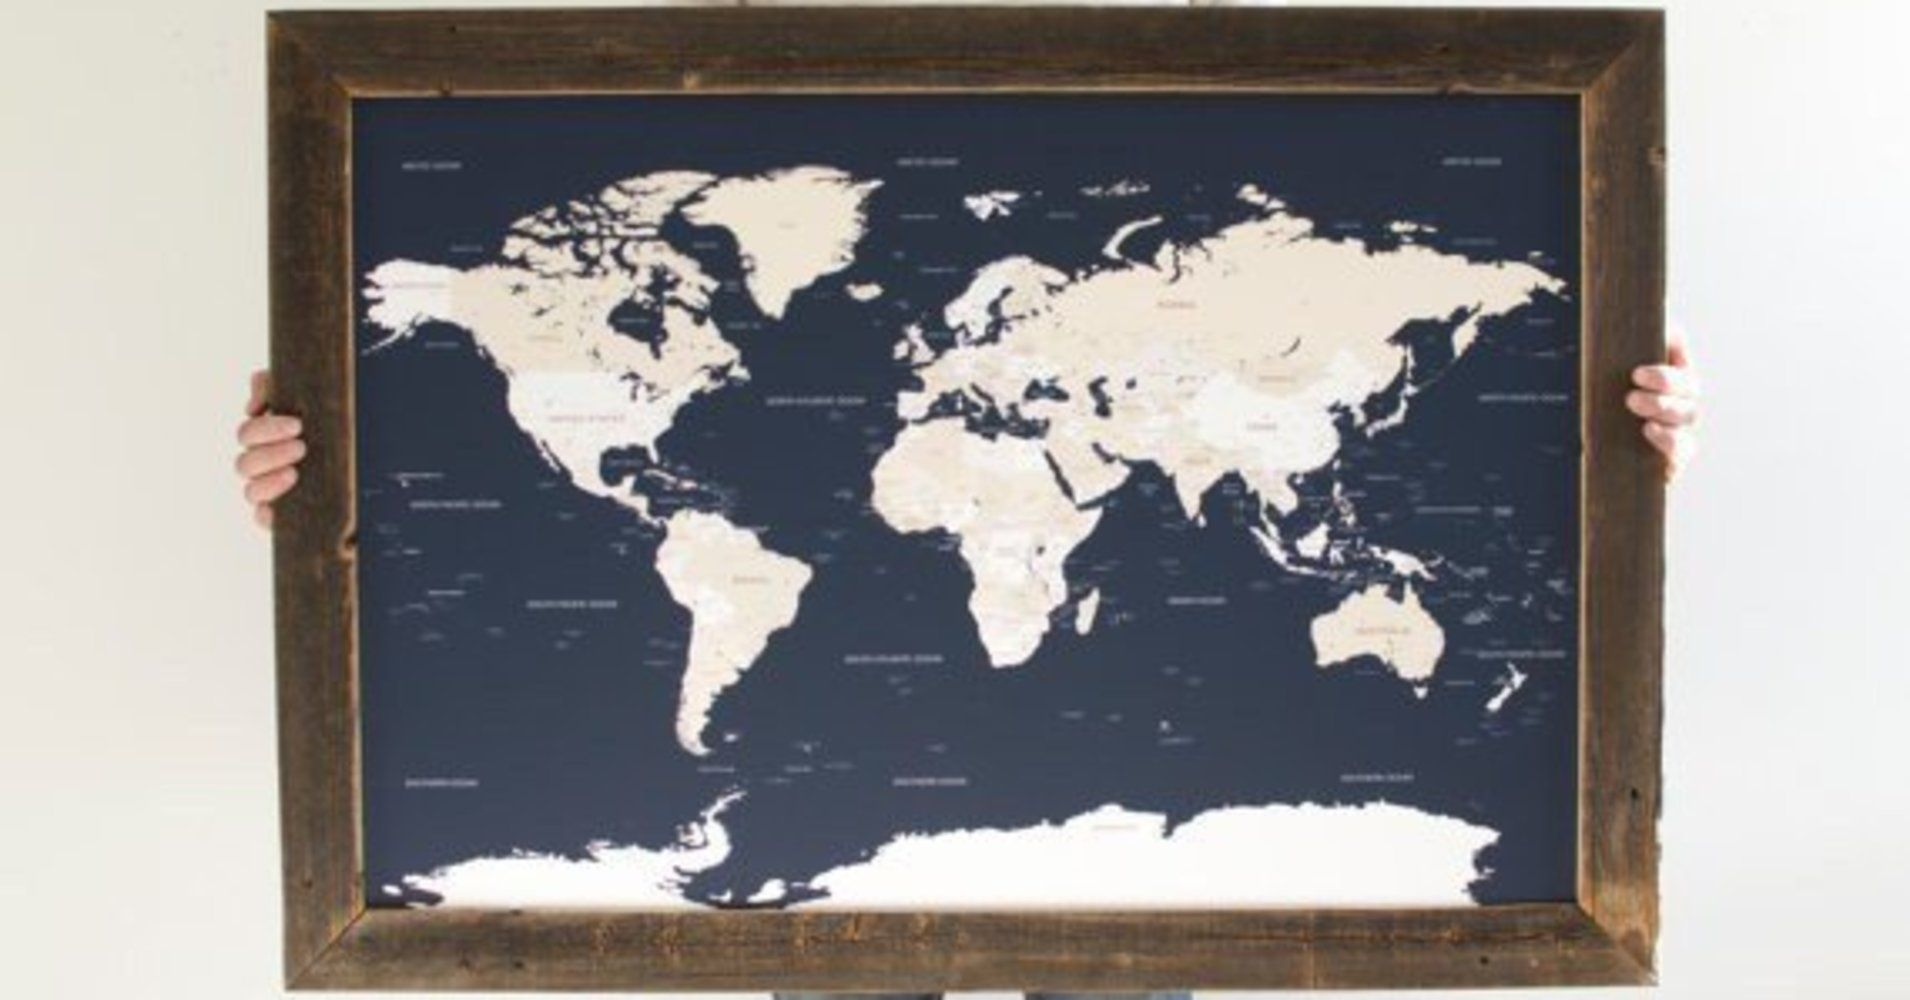 11 adventure ready mothers day gifts for the mom with wanderlust navy world map reclaimed wood push pin travel map gift for husband reclaimed wood frame christmas gifts for husband gumiabroncs Images